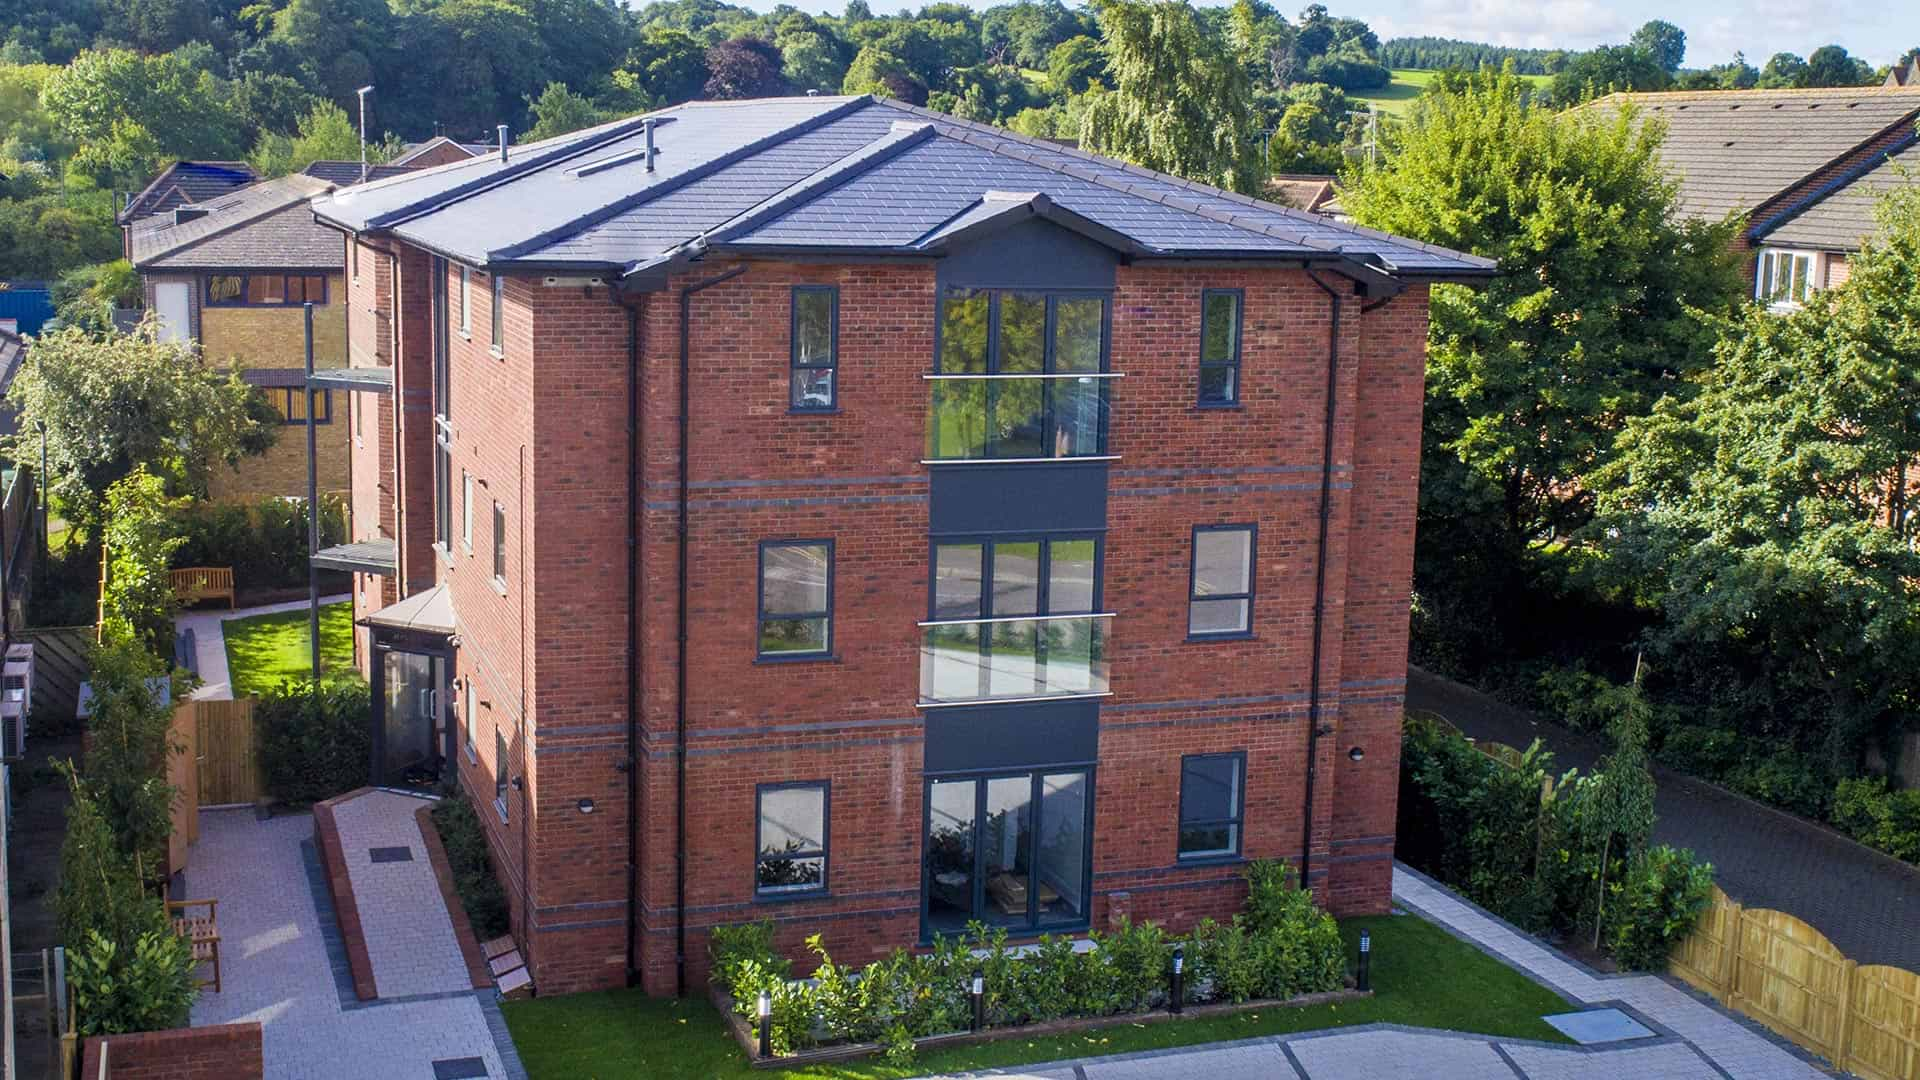 Kent House Partnership homes